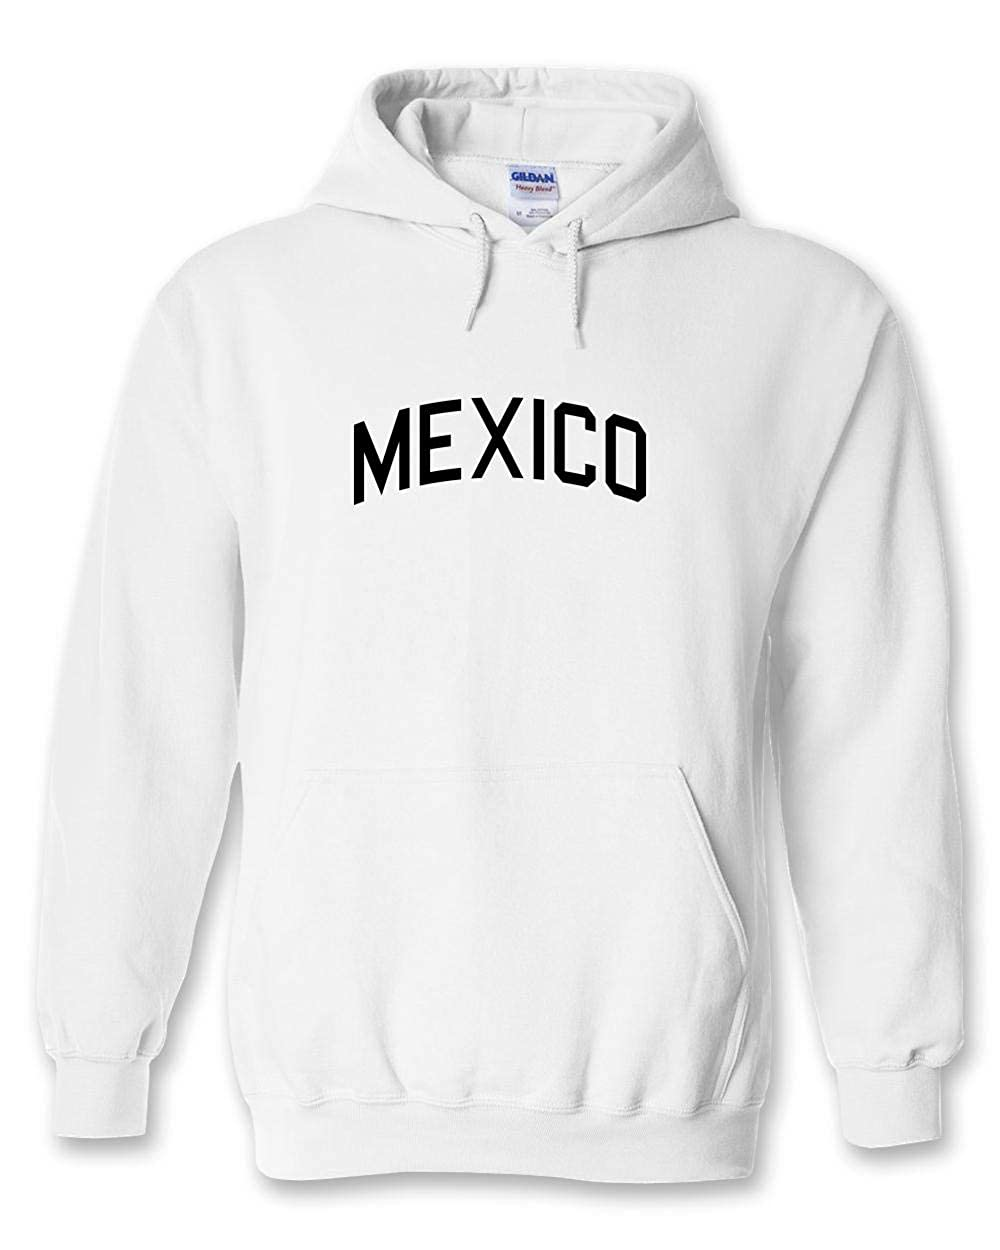 Uncensored Shirts Mexico Hoodie